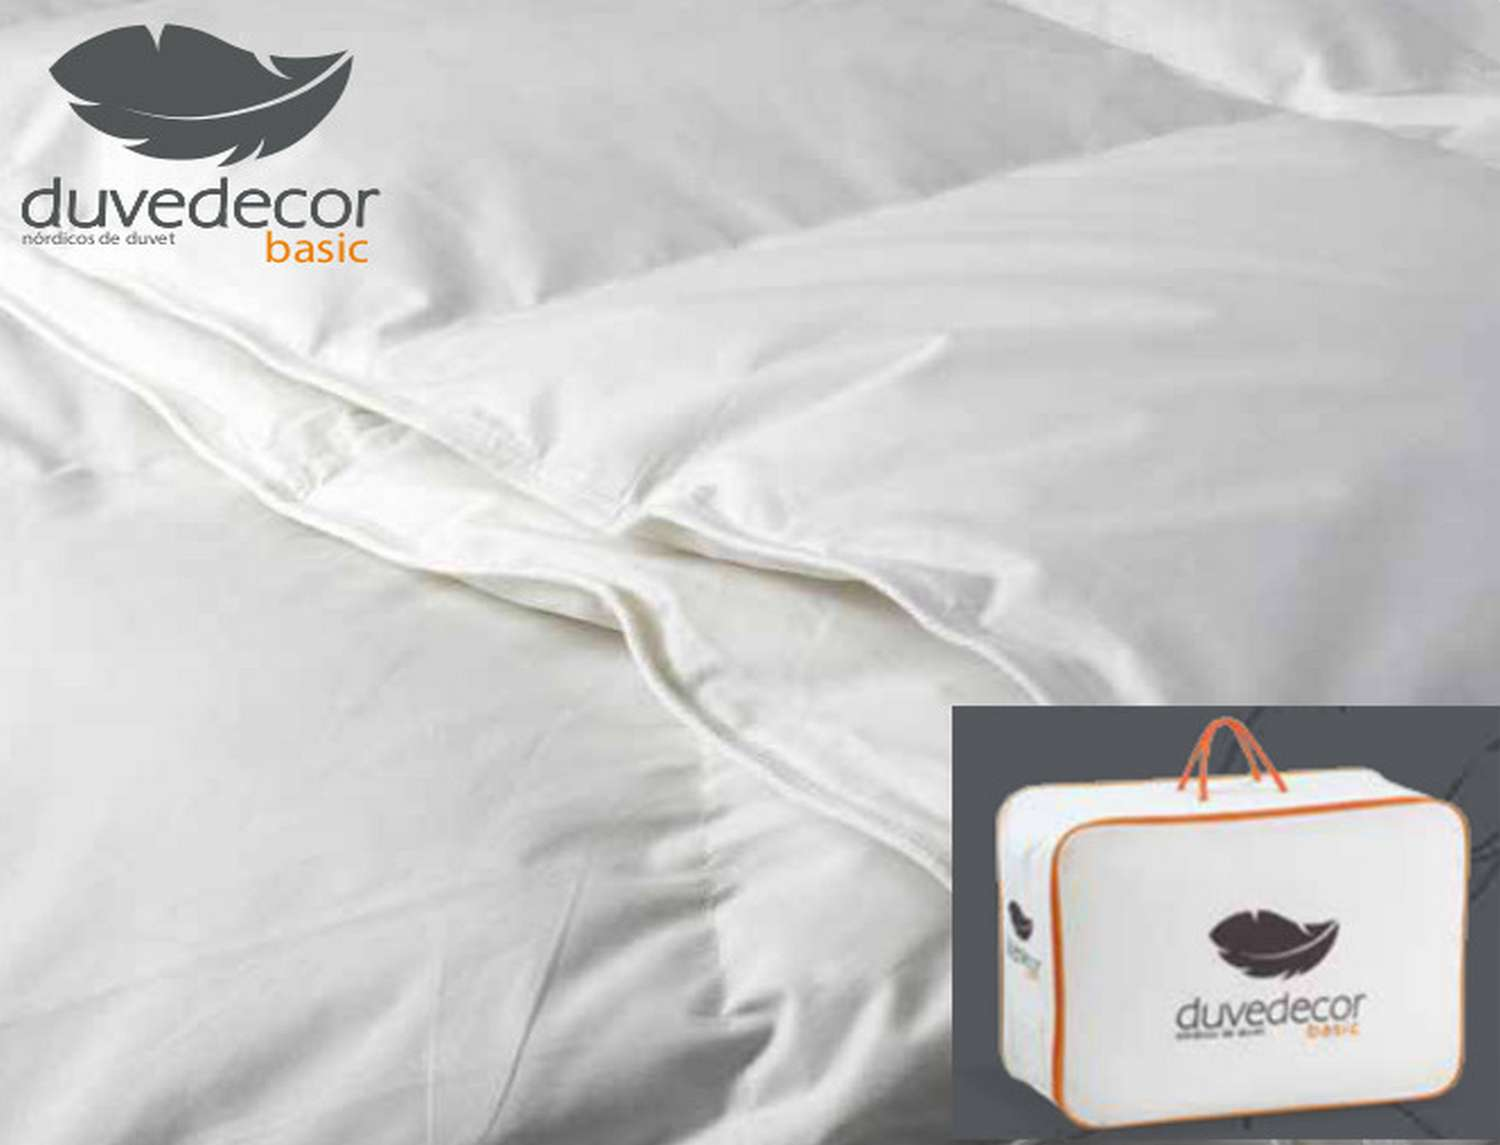 Duvedecor Edredón nórdico Golden